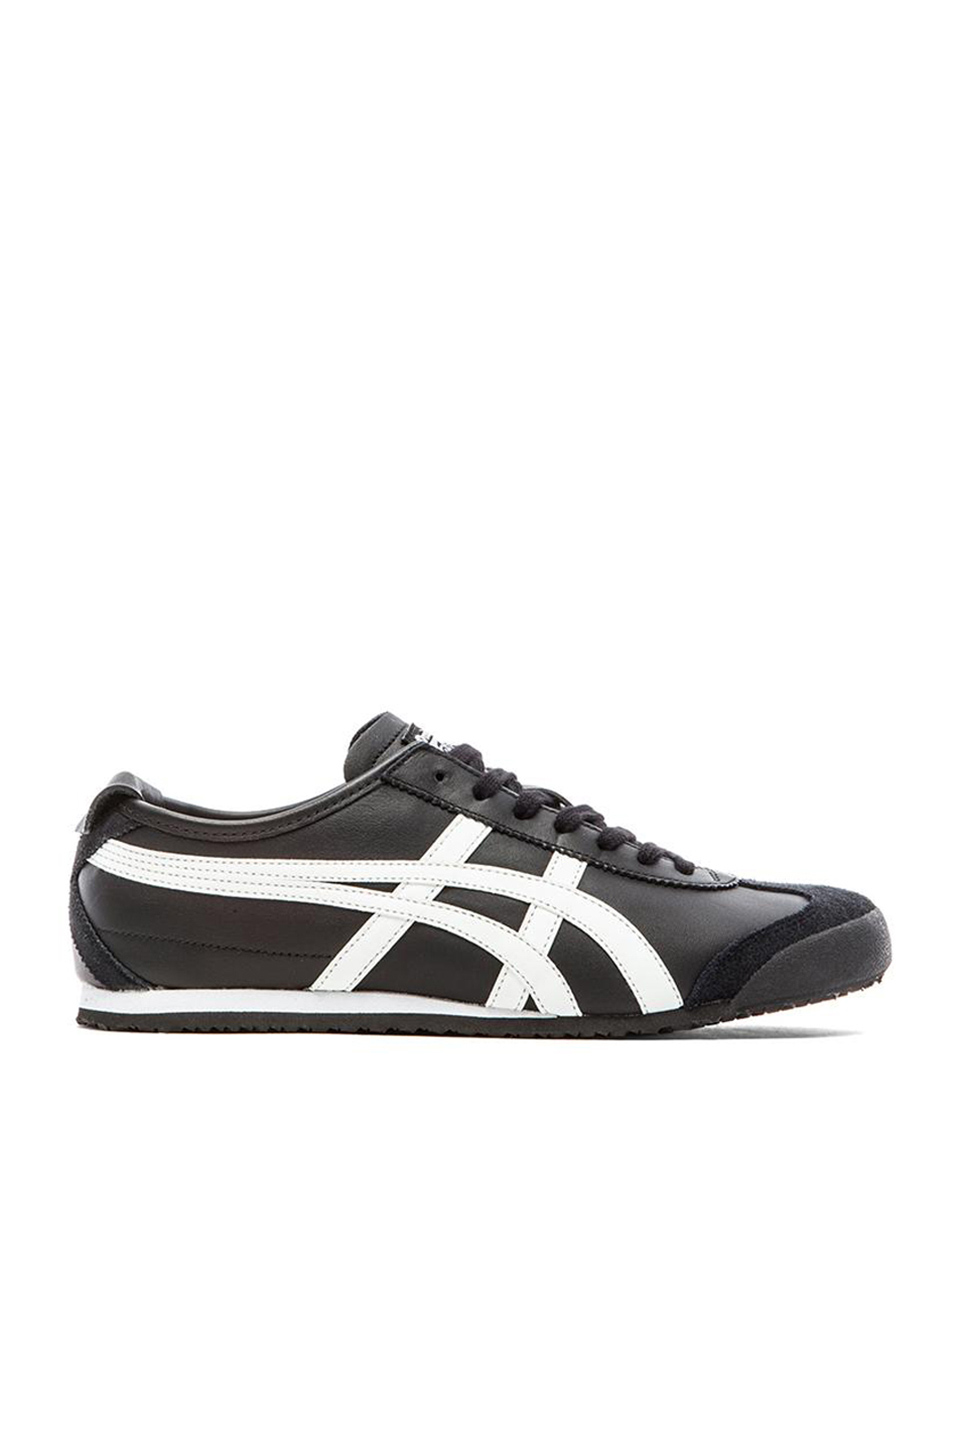 huge selection of e3c9d da273 Mexico 66, Onitsuka Tiger